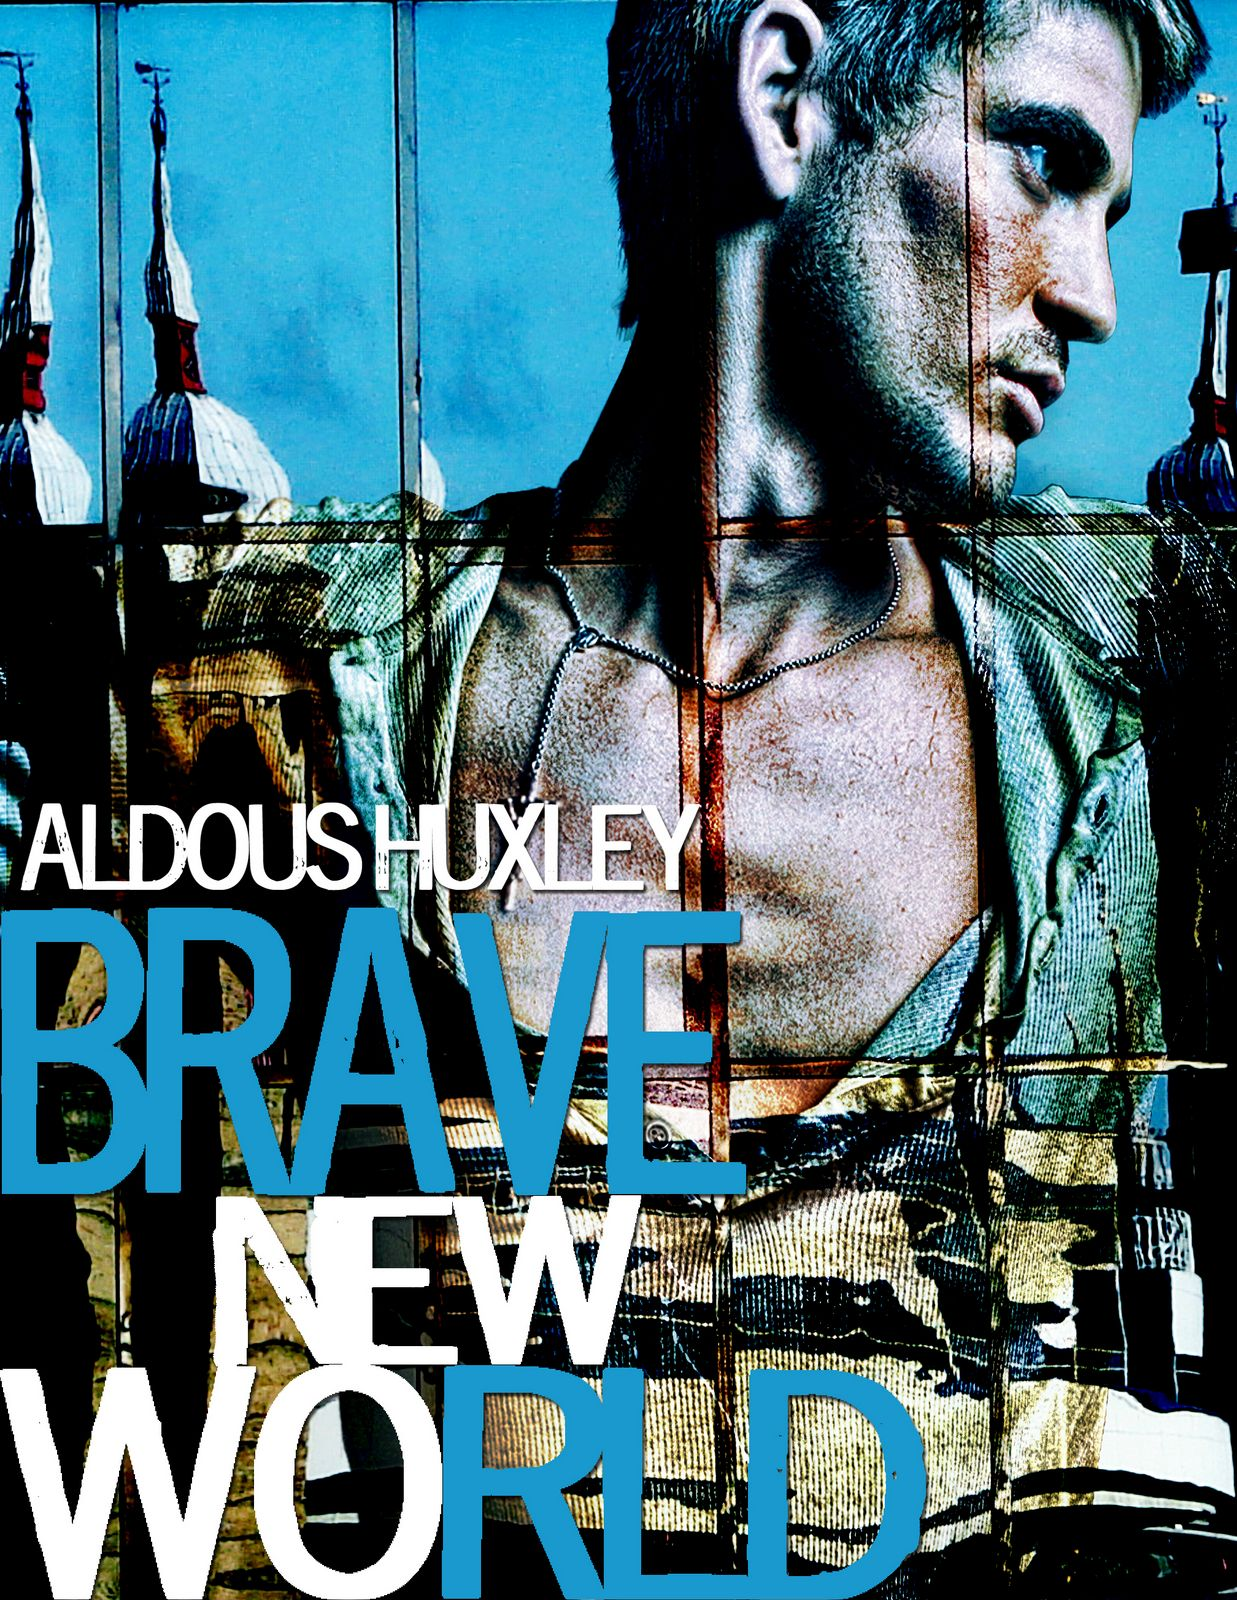 how huxley s brave new world portrays In brave new world revisited, a series of essays on topics suggested by the novel, huxley emphasizes the necessity of resisting the power of tyranny by keeping one's mind active and free the individual freedoms may be limited in the modern world, huxley admits, but they must be exercised constantly or be lost.